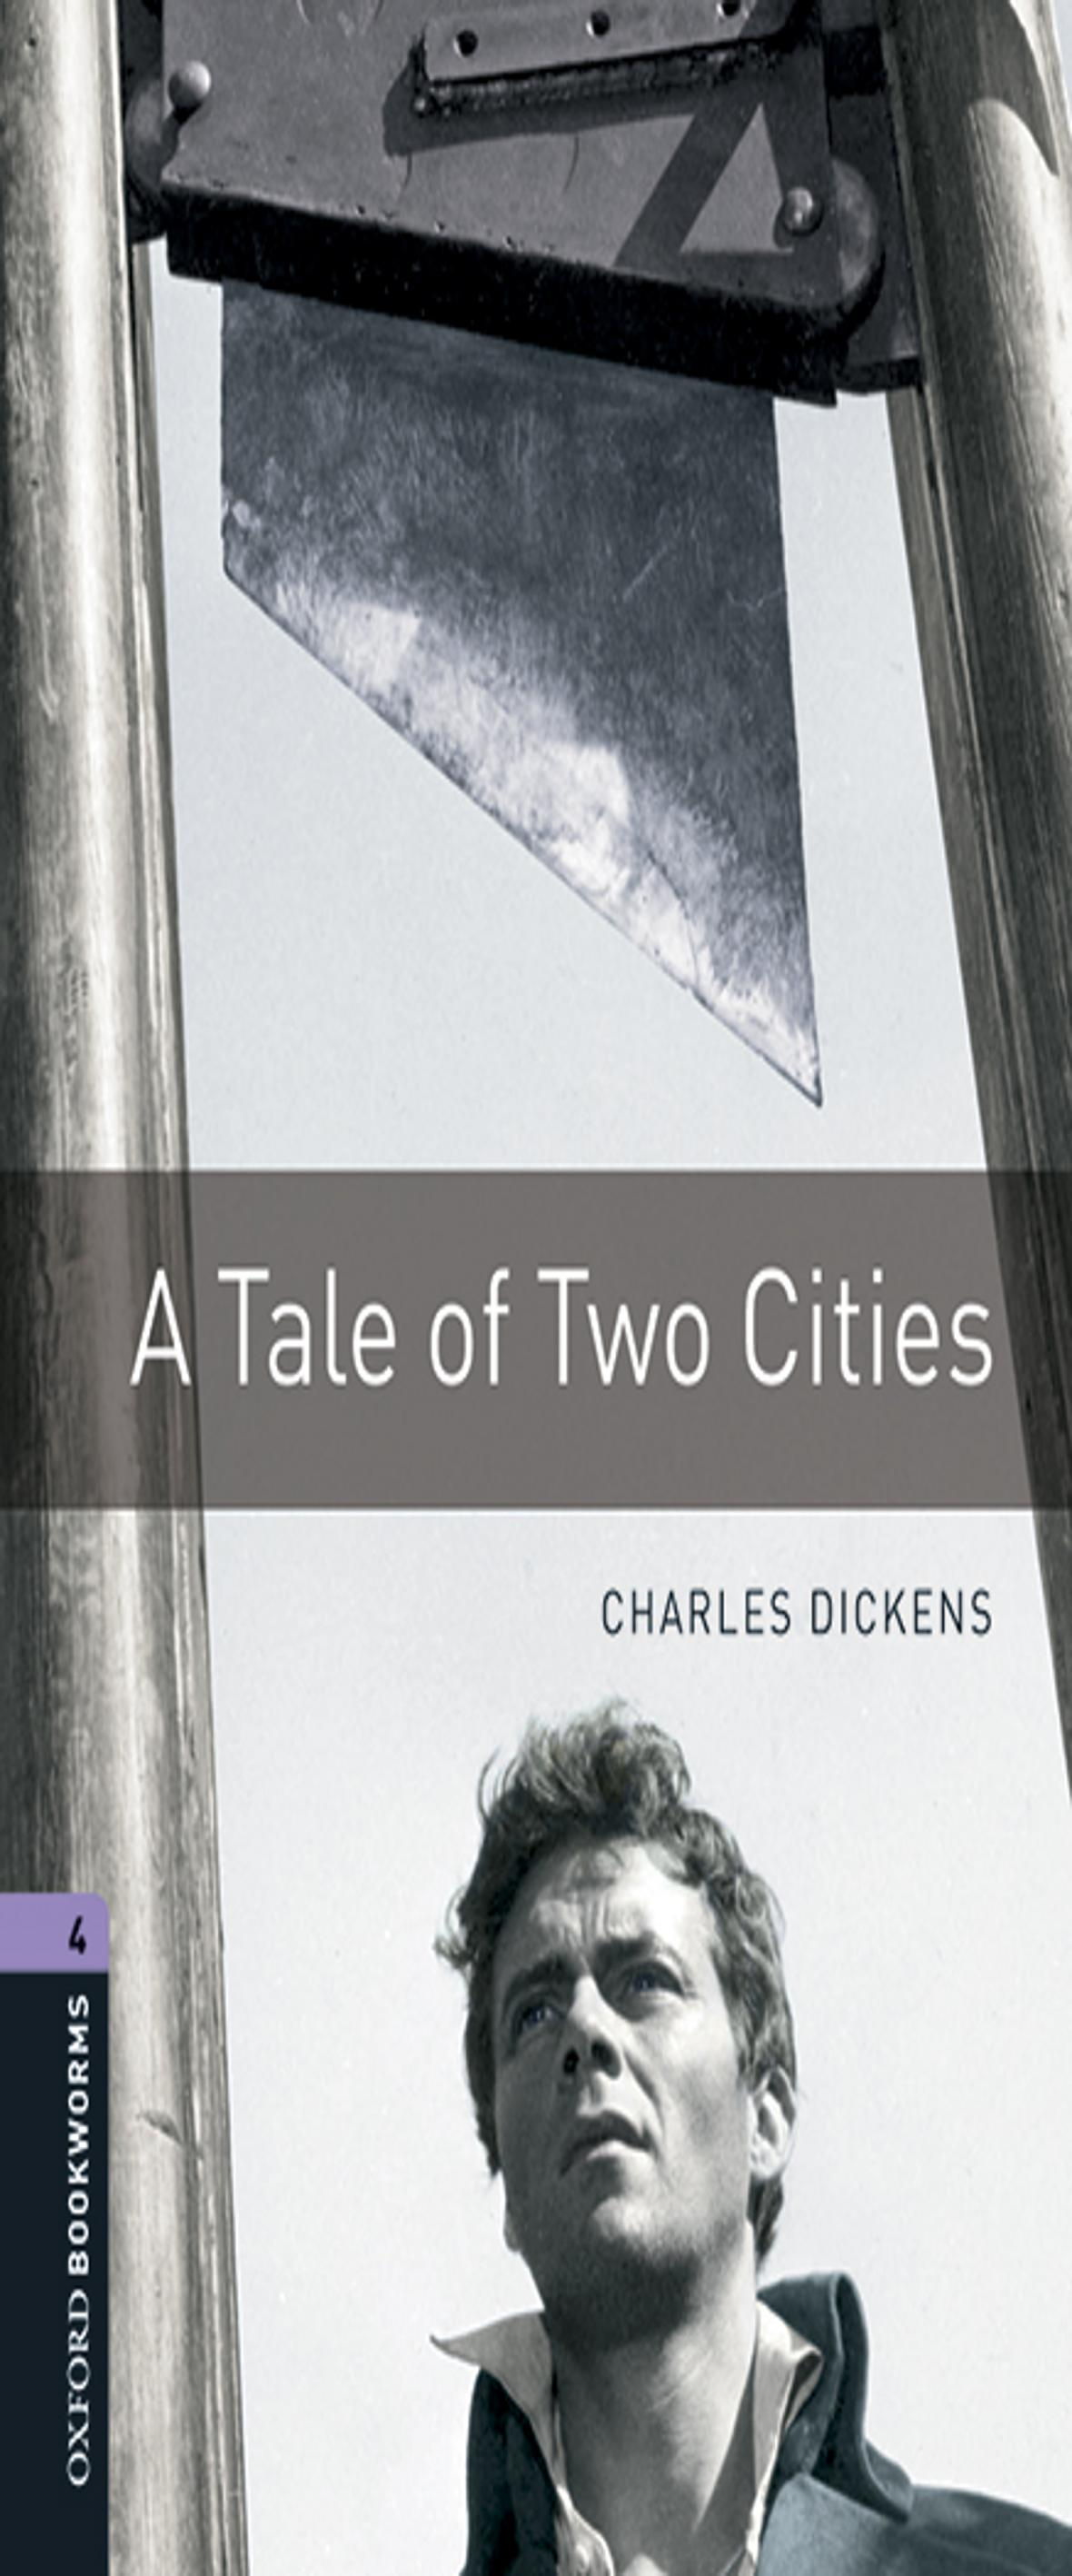 TALE OF TWO CITIES Download MP3 - OBL 4